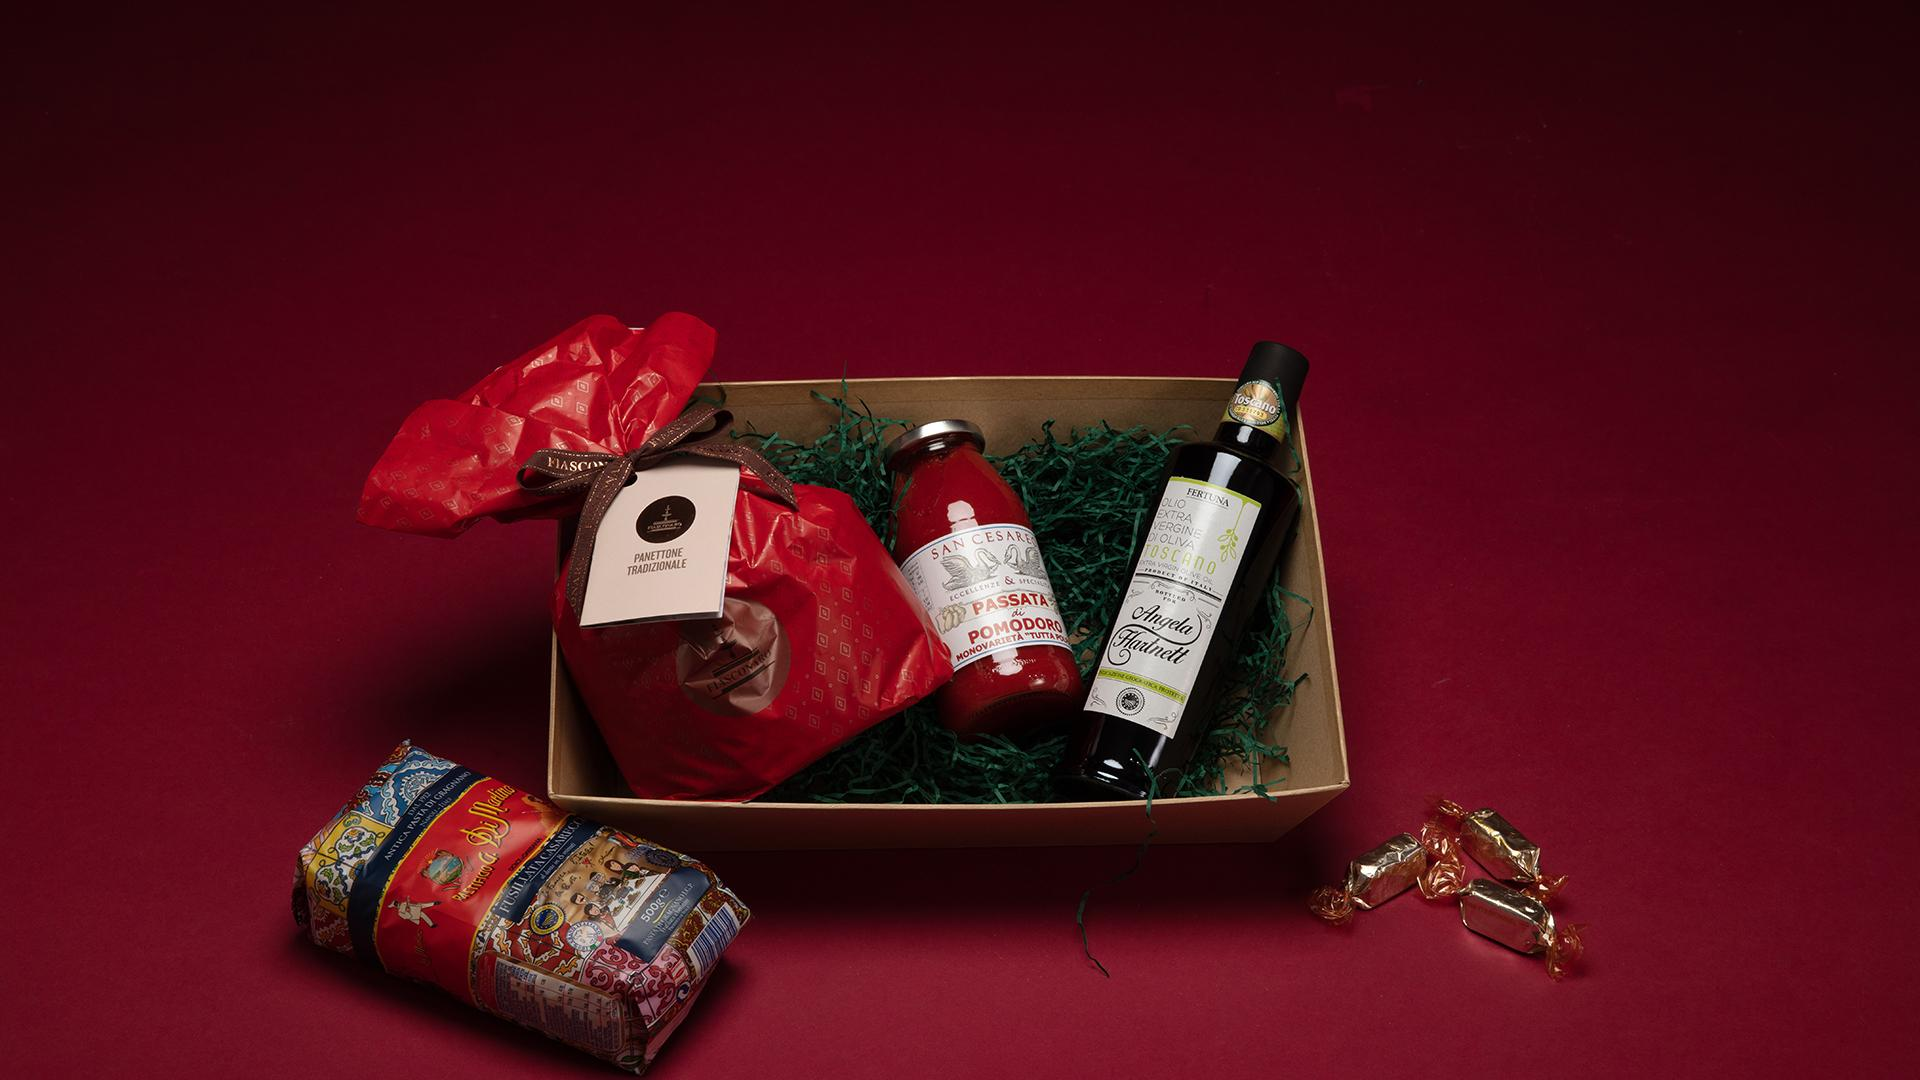 Christmas Hampers 2019: Angela Hartnett's No. 2 Northern Italian Hamper, £65